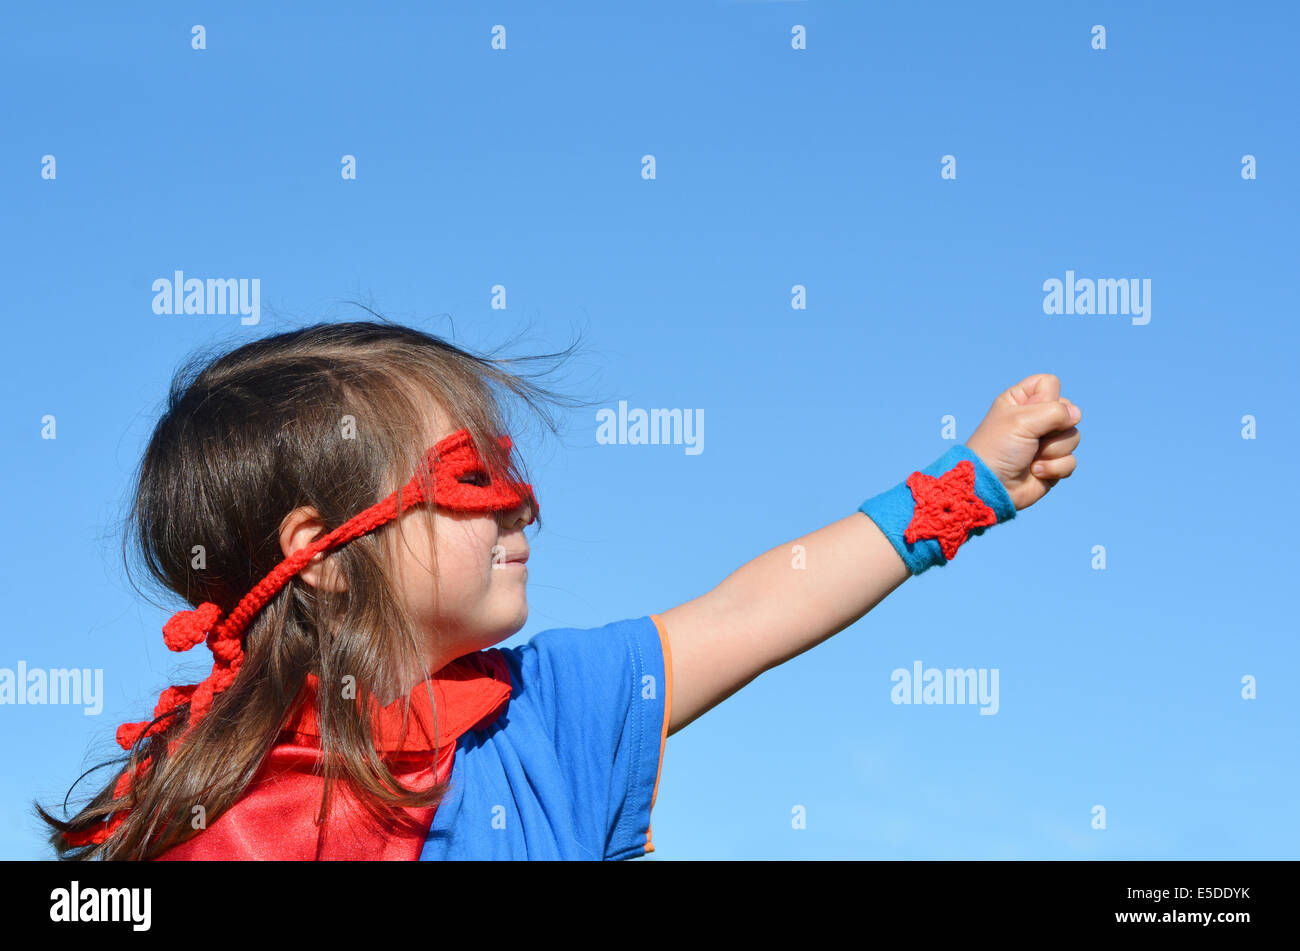 Superhero child (girl) against dramatic blue sky background with copy space. concept photo of Super hero, girl power, - Stock Image